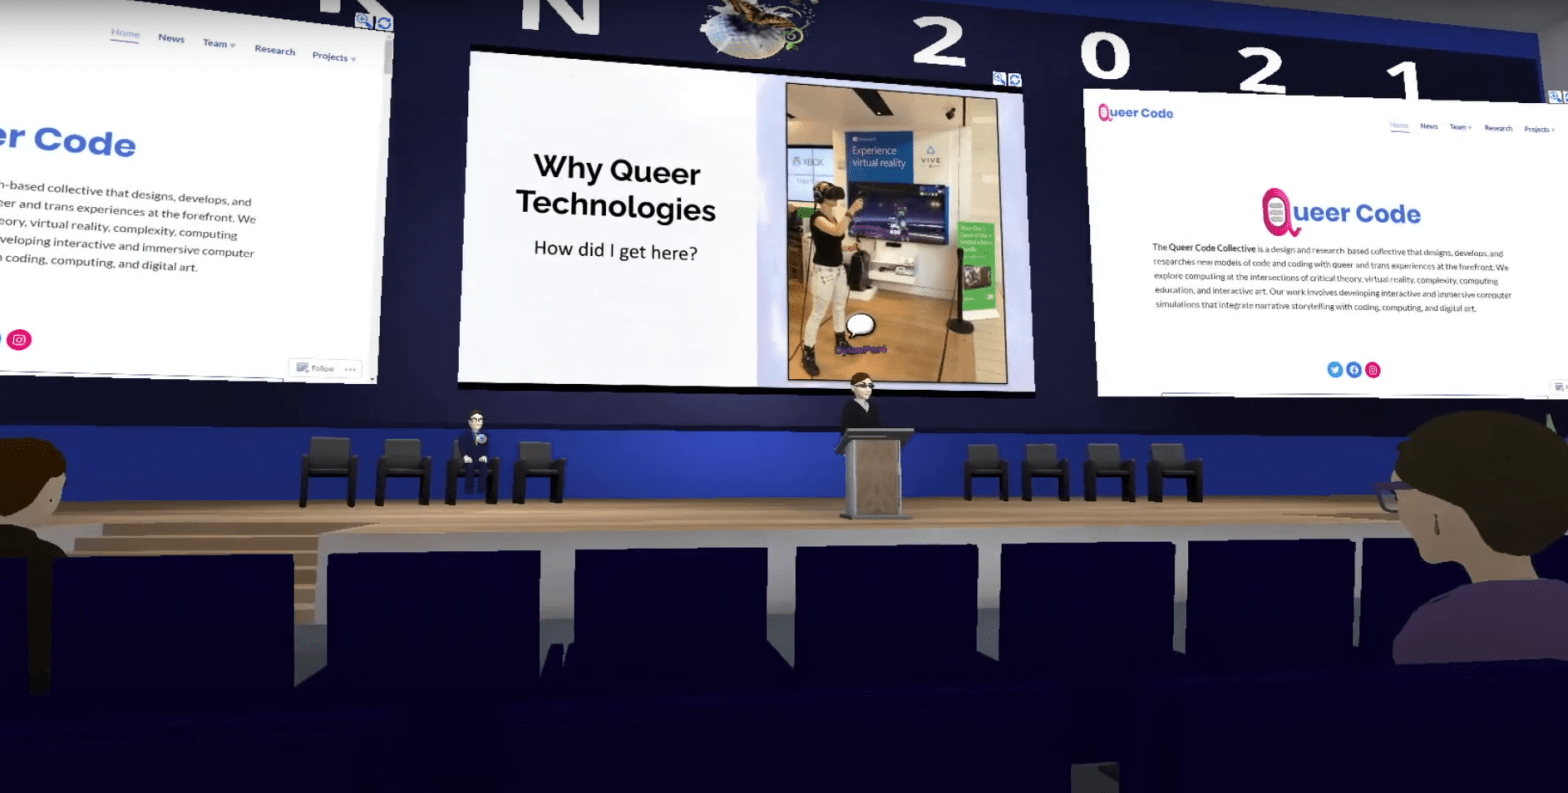 Screen capture of iLRN talk in the Virbela virtual conference platform. Dylan is represented as an avatar on a stage with three large digital presentation screens behind them.